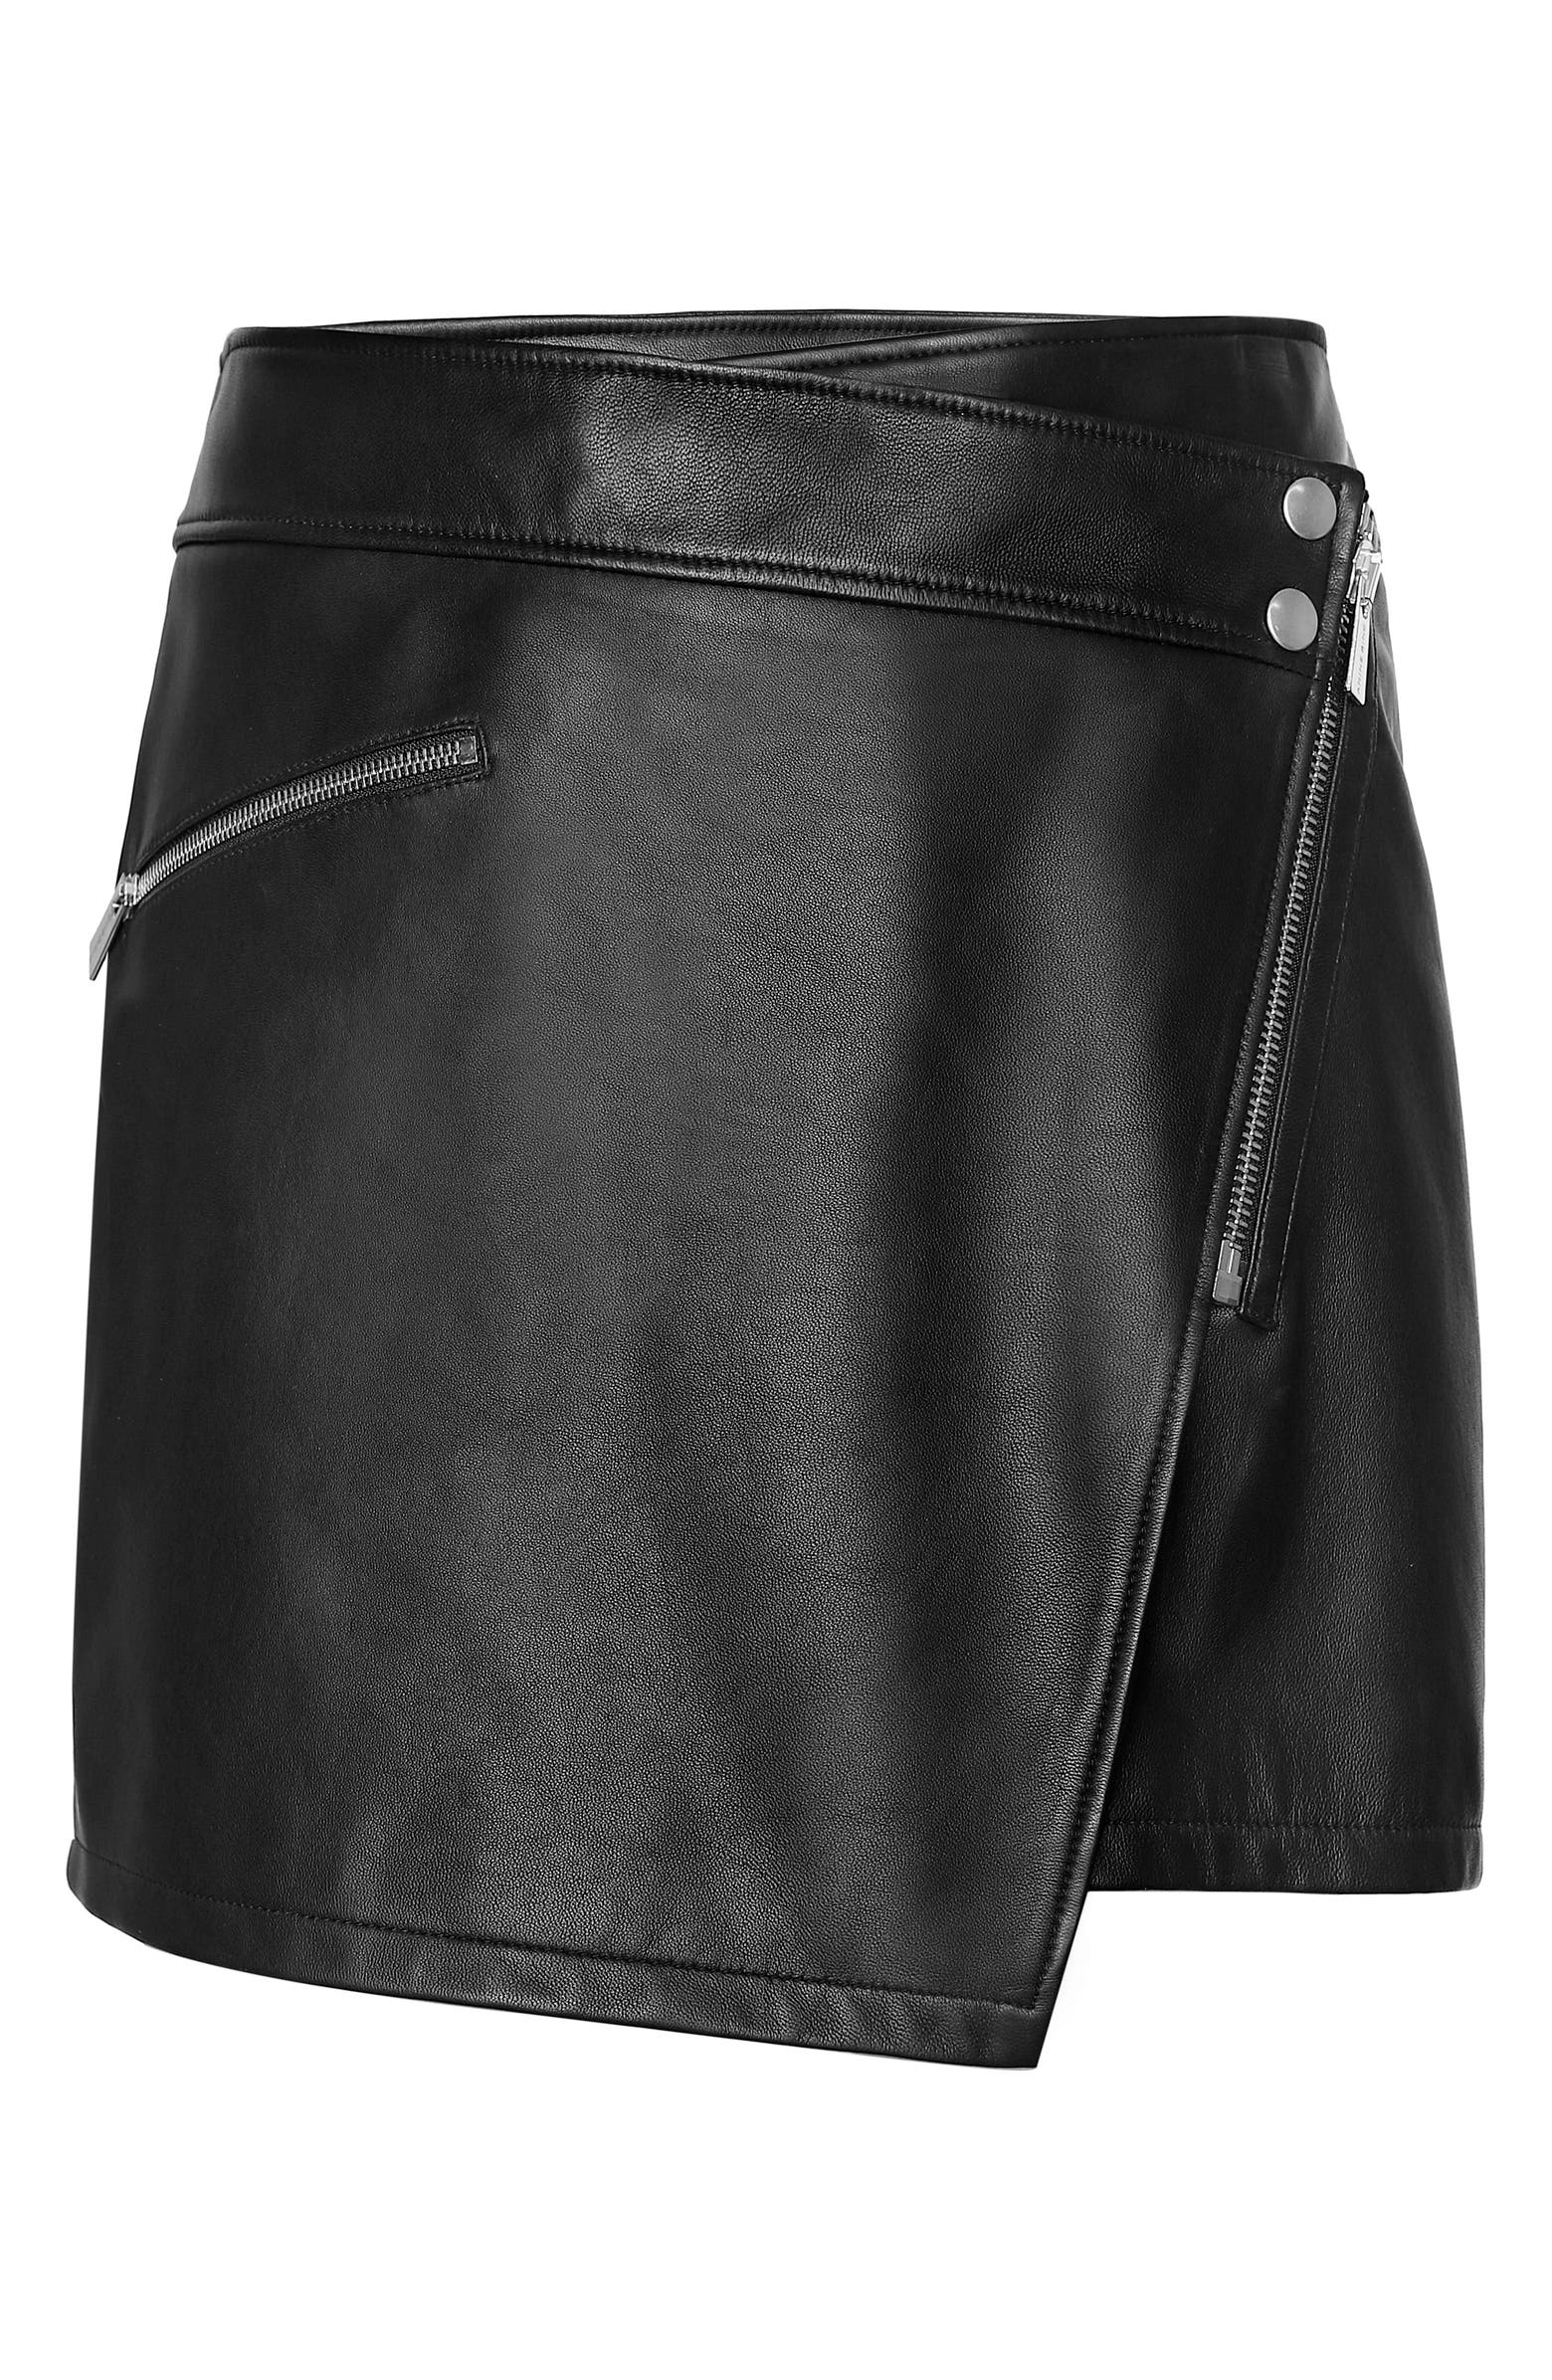 ANINE BING Sarah Zip Front Leather Miniskirt, Main, color, BLACK